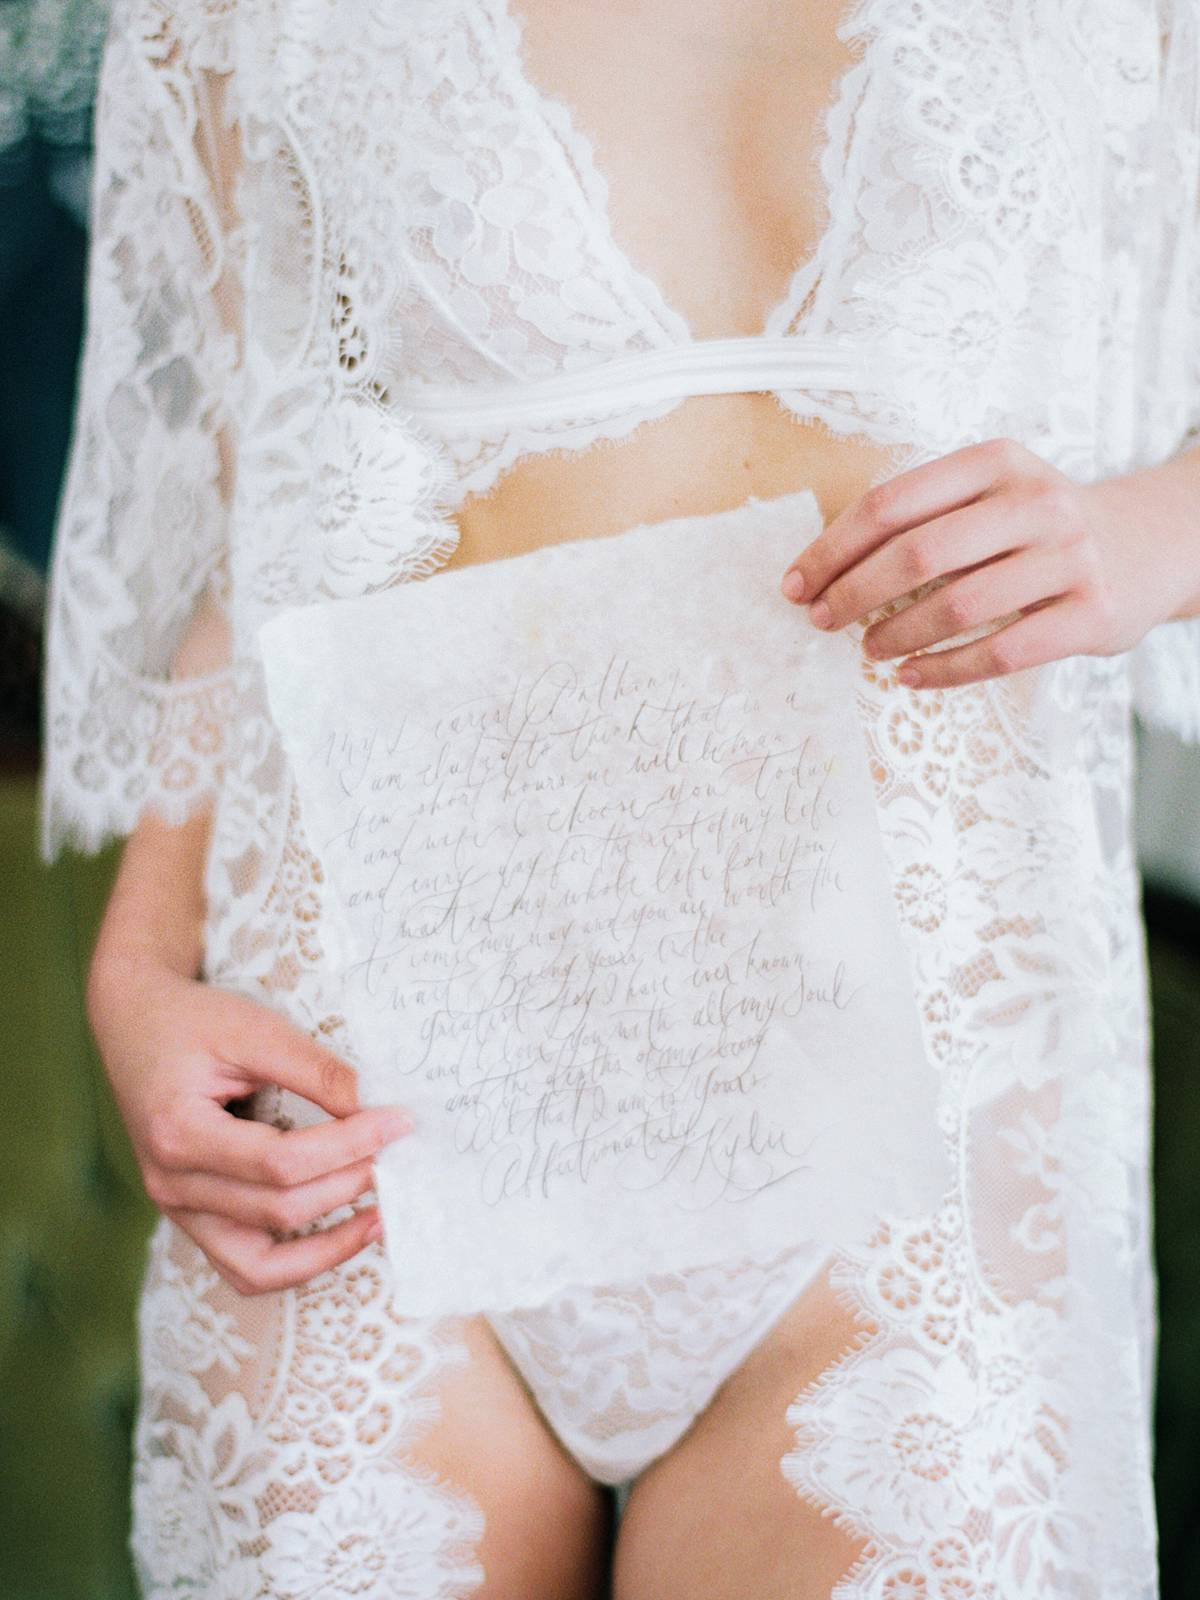 charleston bridal boudoir on film with bride holding hand made letter at wingate plantation in lingerie and lace robe